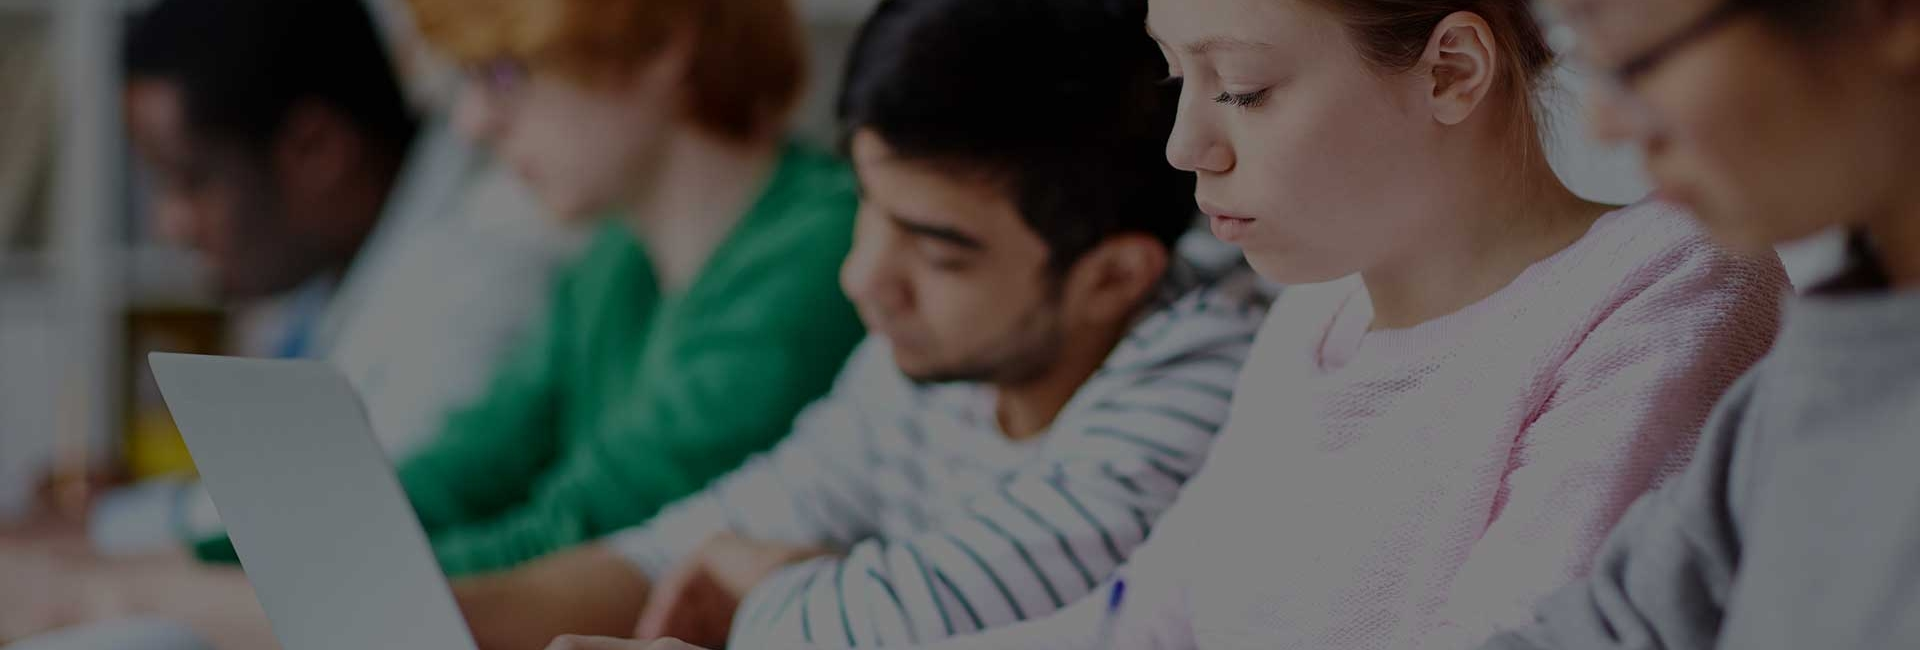 Students-Concentrating